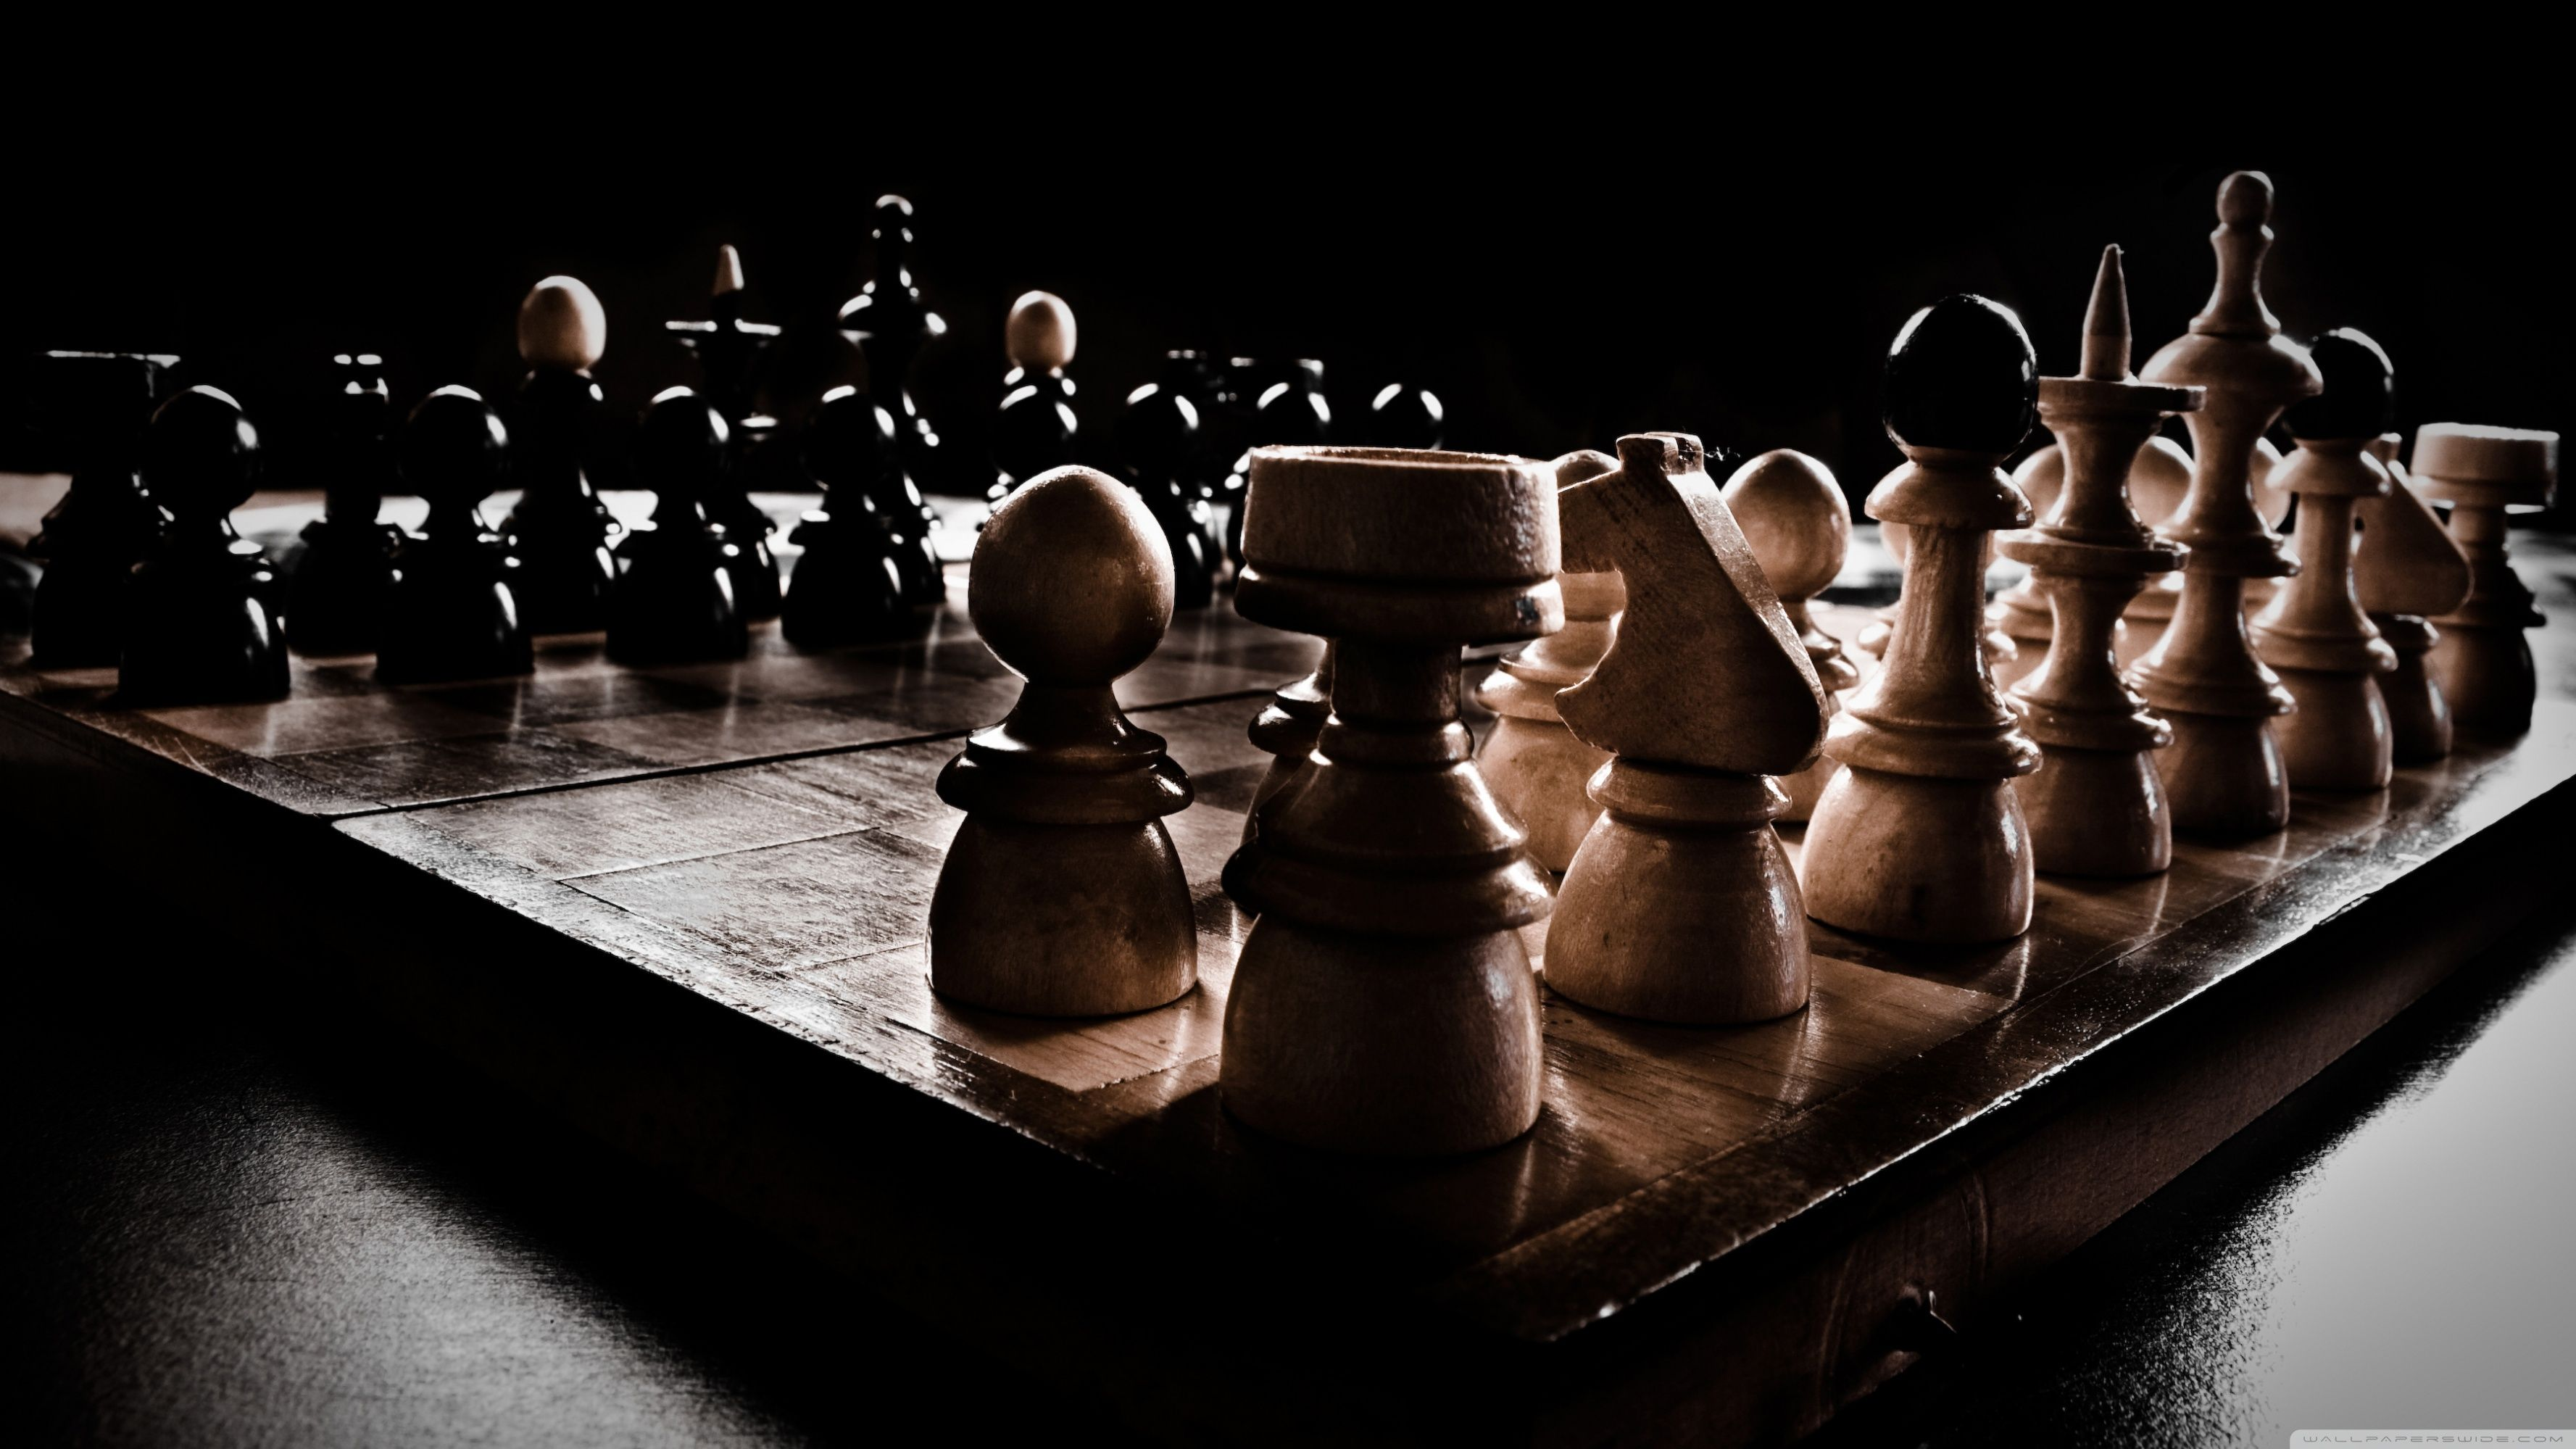 Chess Wallpapers Wallpapers All Superior Chess Wallpapers Backgrounds Wallpapersplanet Net